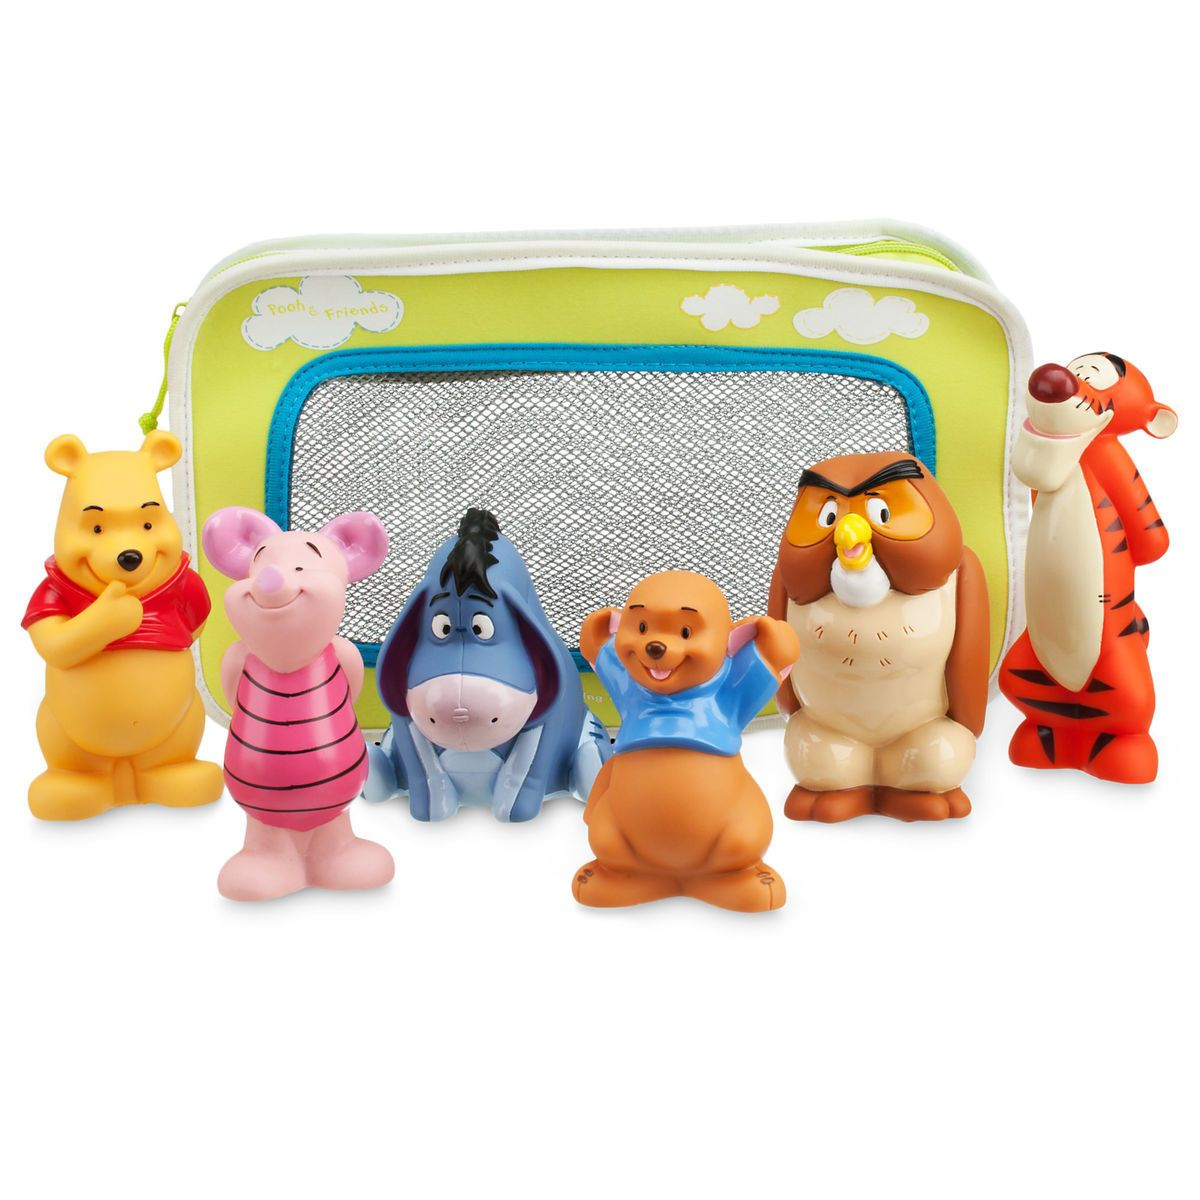 Product Image Of Winnie The Pooh And Pals Bath Toy Set For Baby